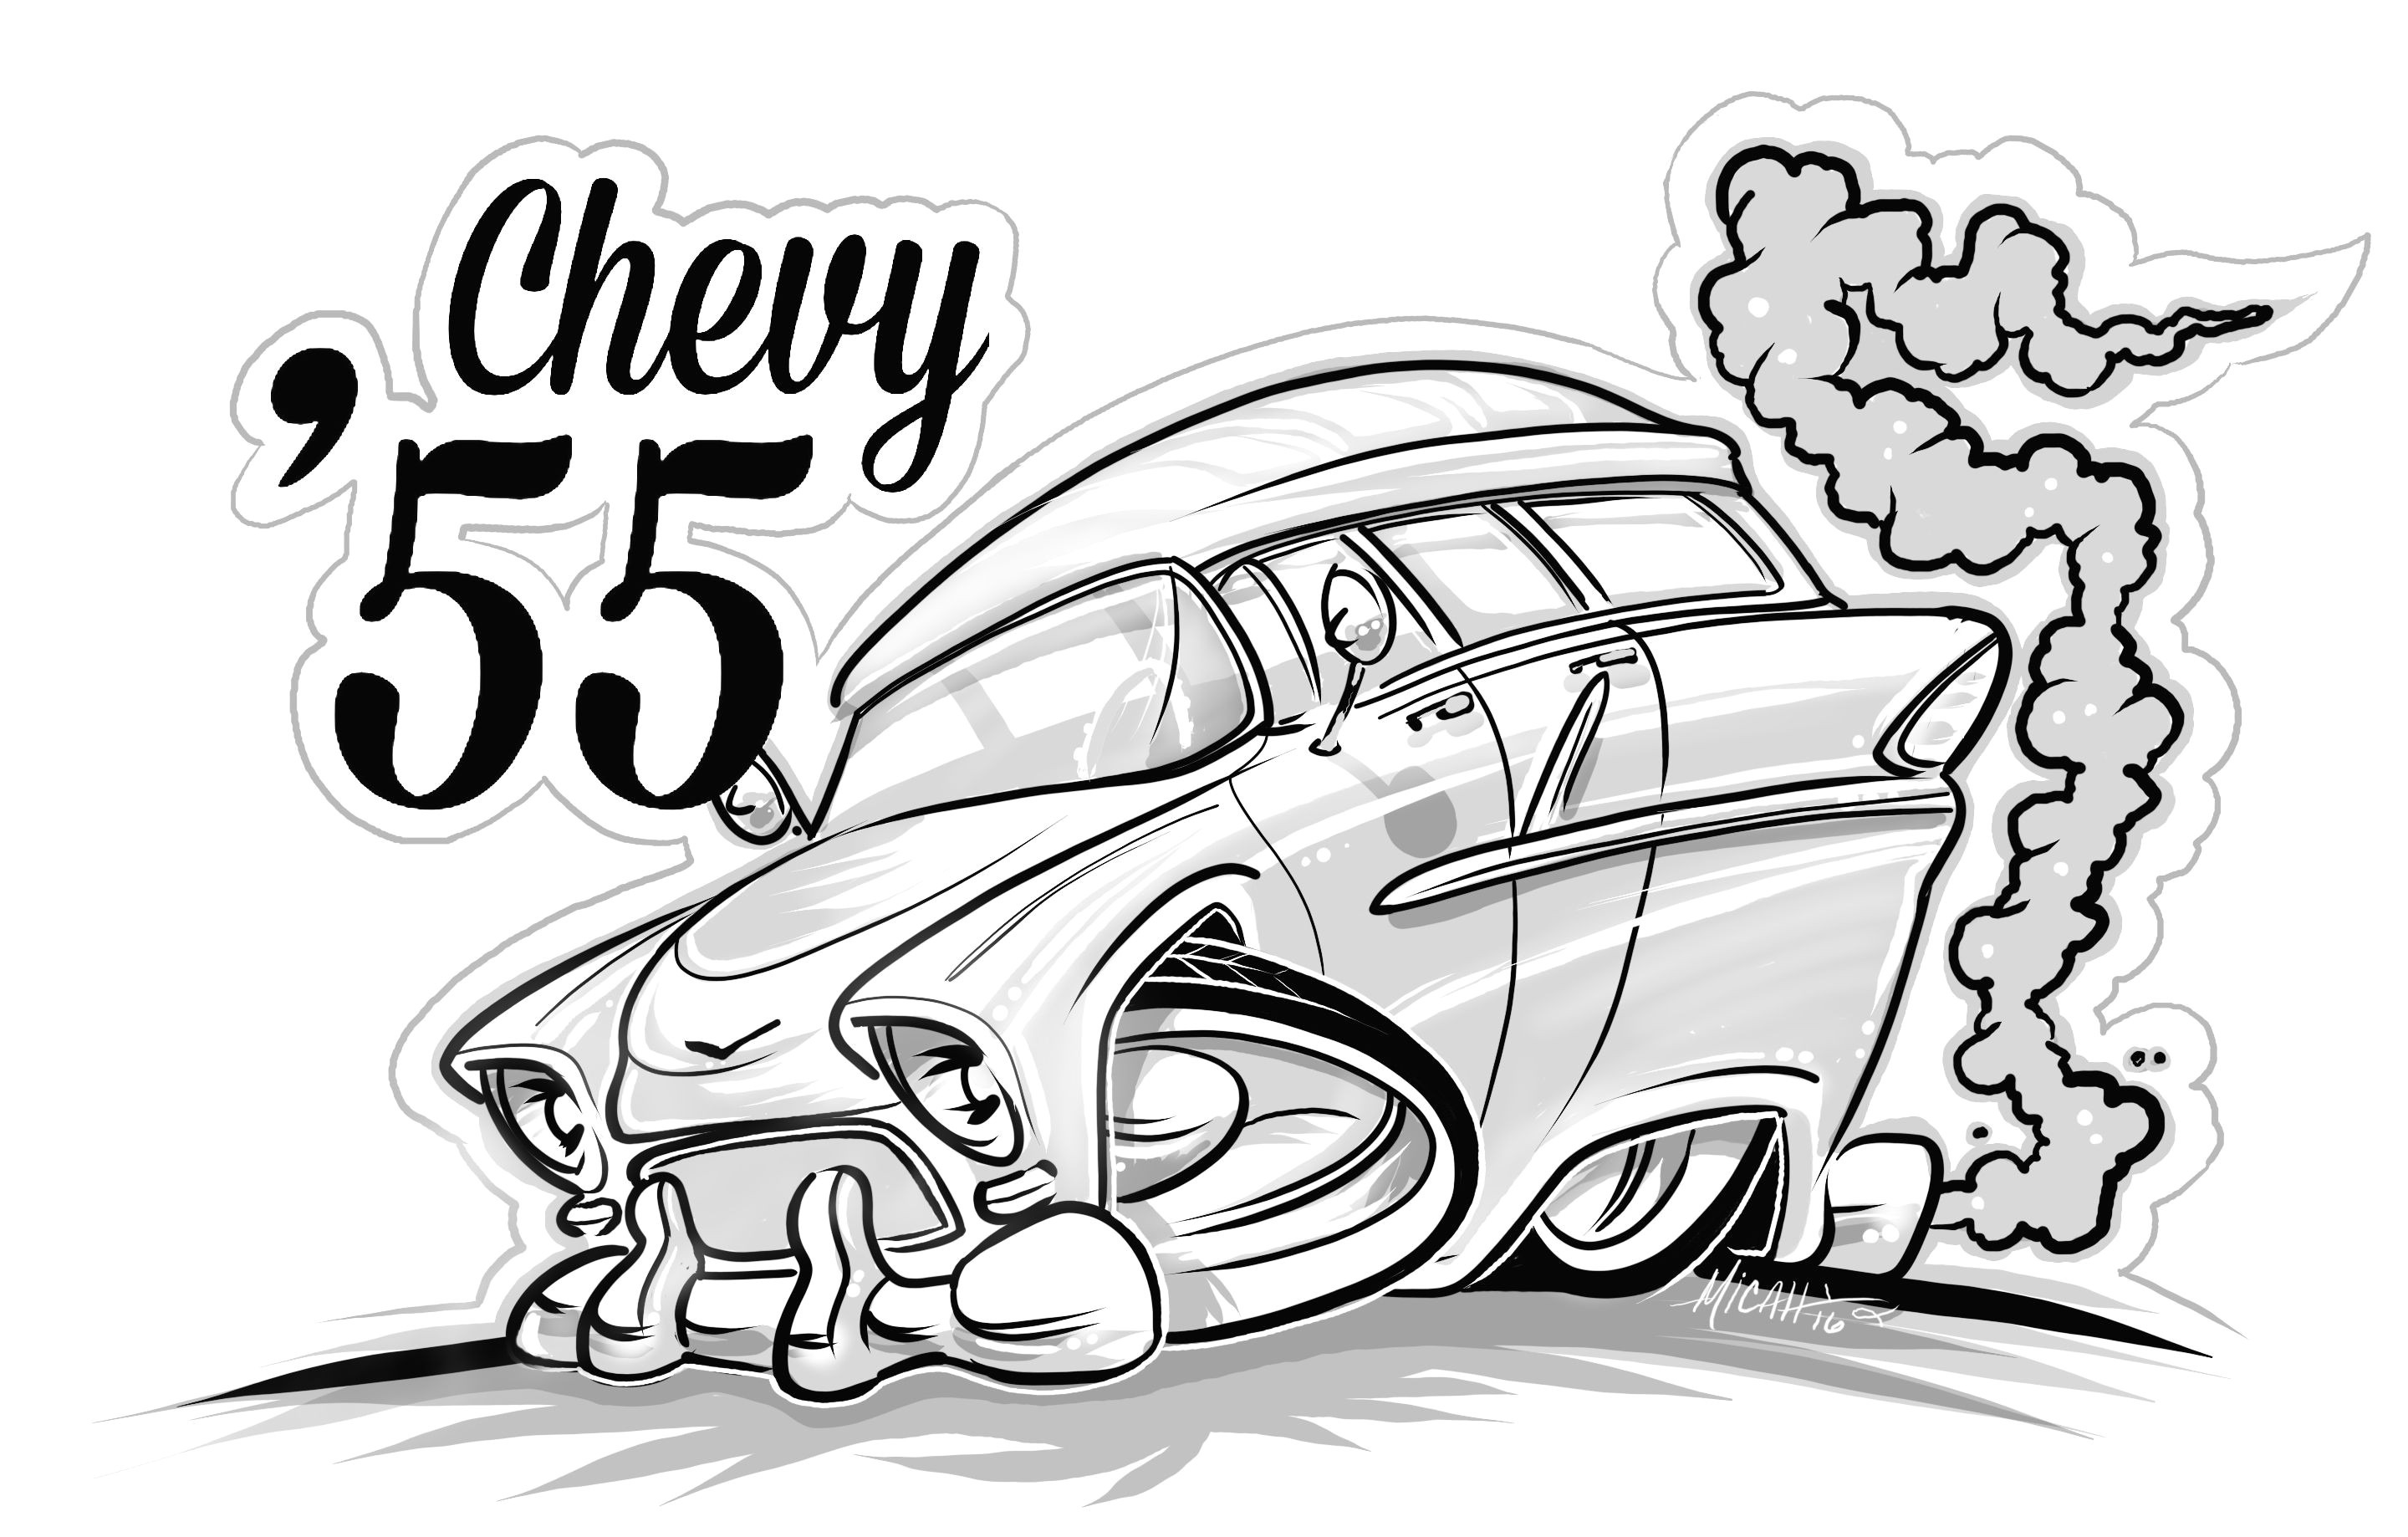 Drawing A Cartoon Car You Can Purchase This Micahdoodles Coloring Book 1 for 8 Contact